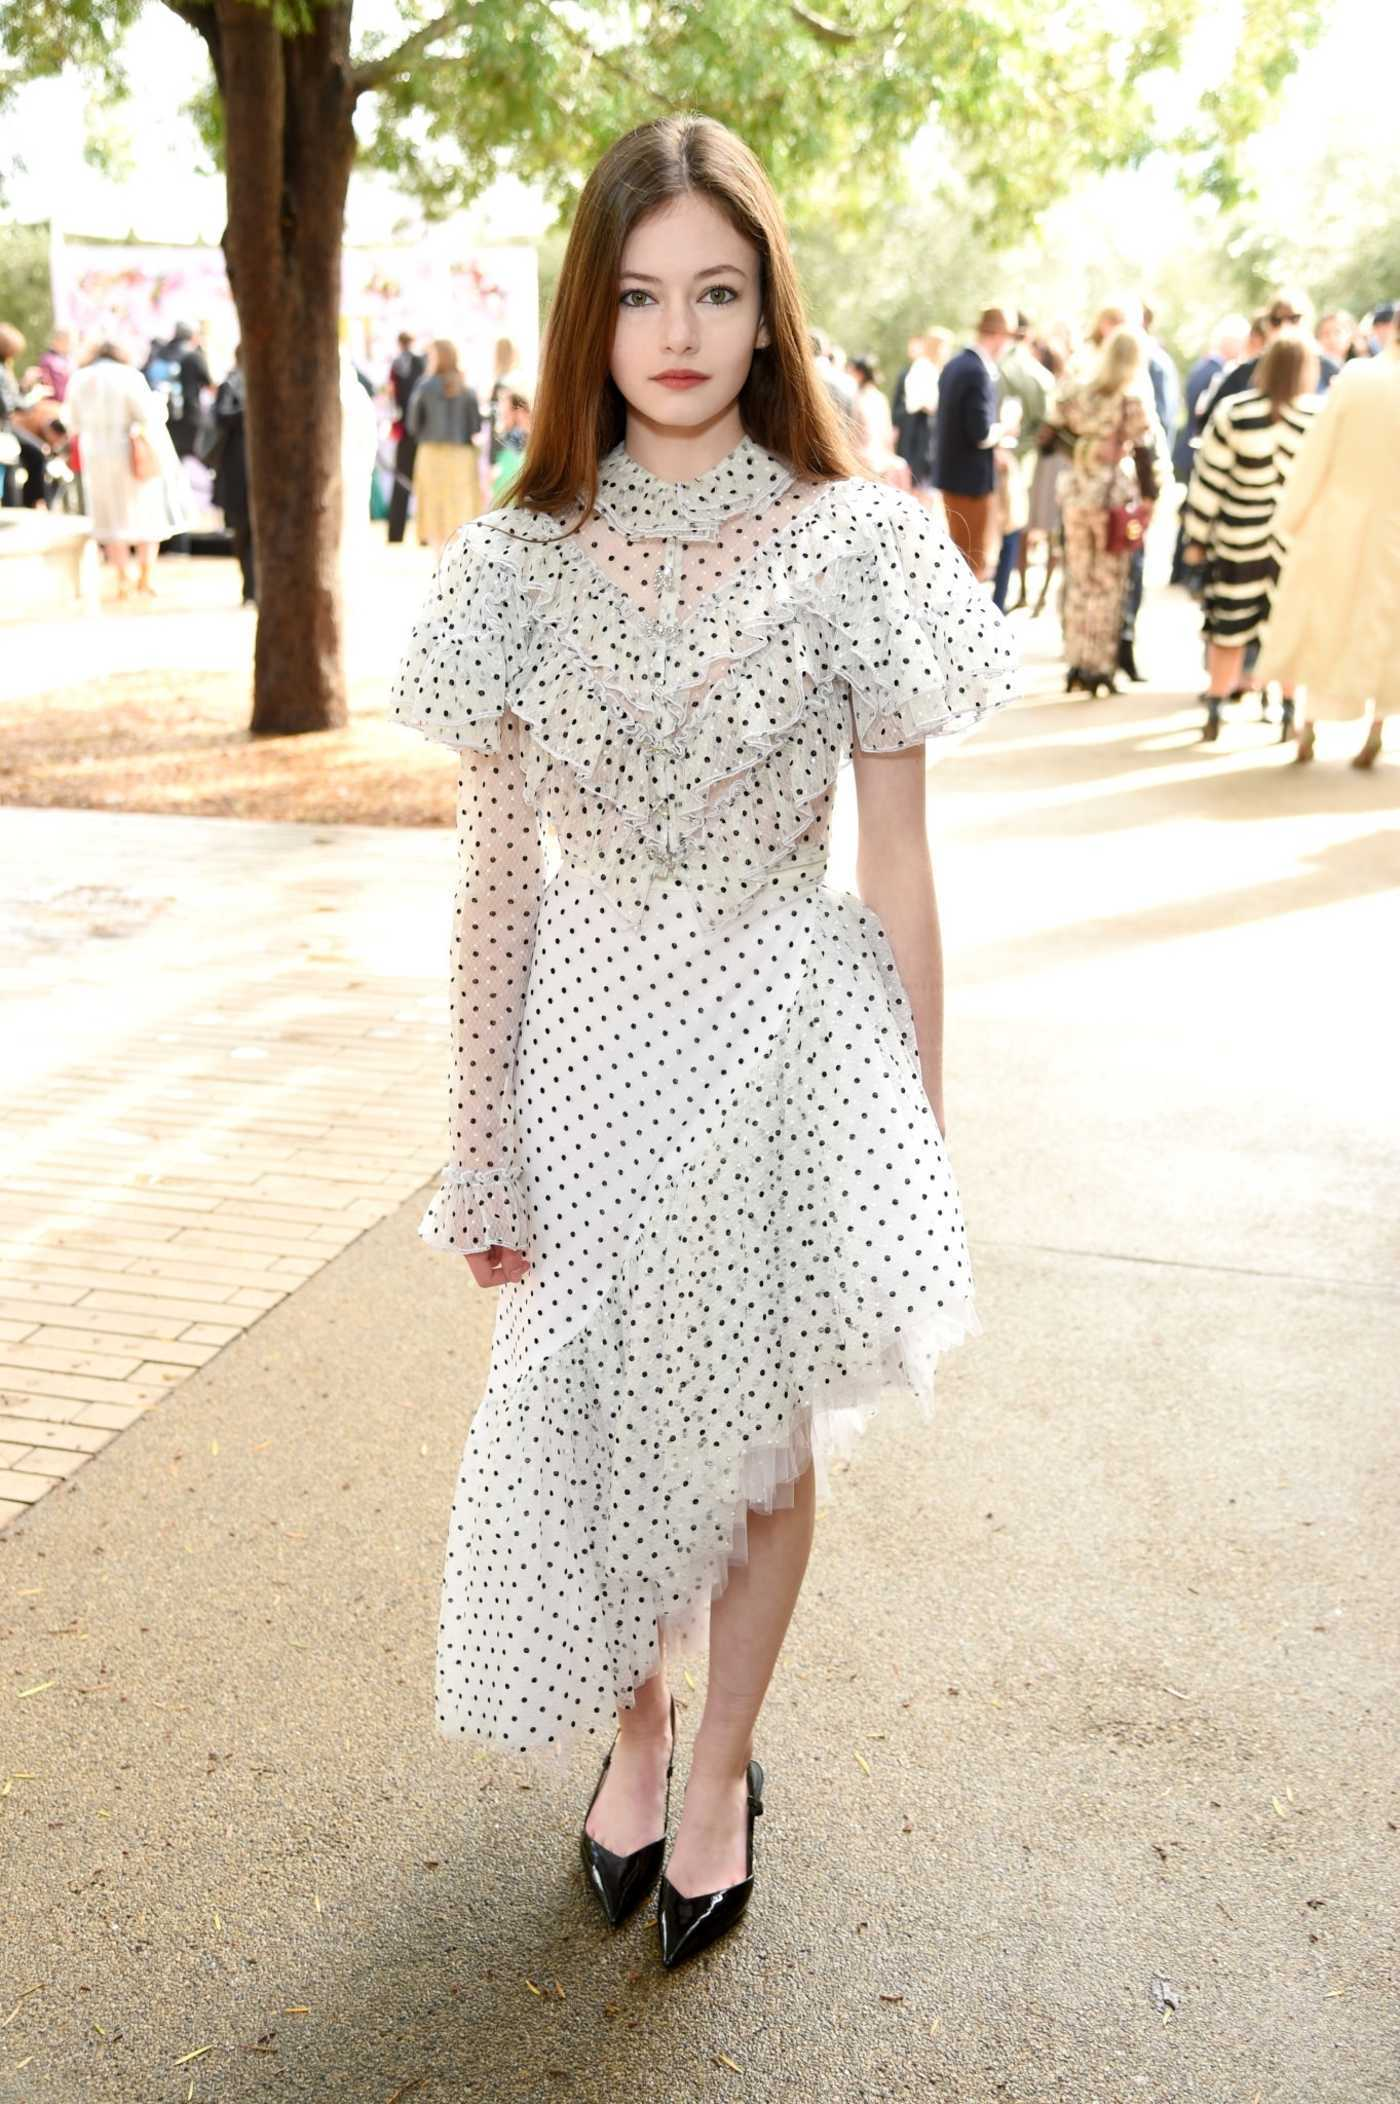 Mackenzie Foy Attends 2019 JNSQ Rose Cru Show at Huntington Library in California 02/05/2019